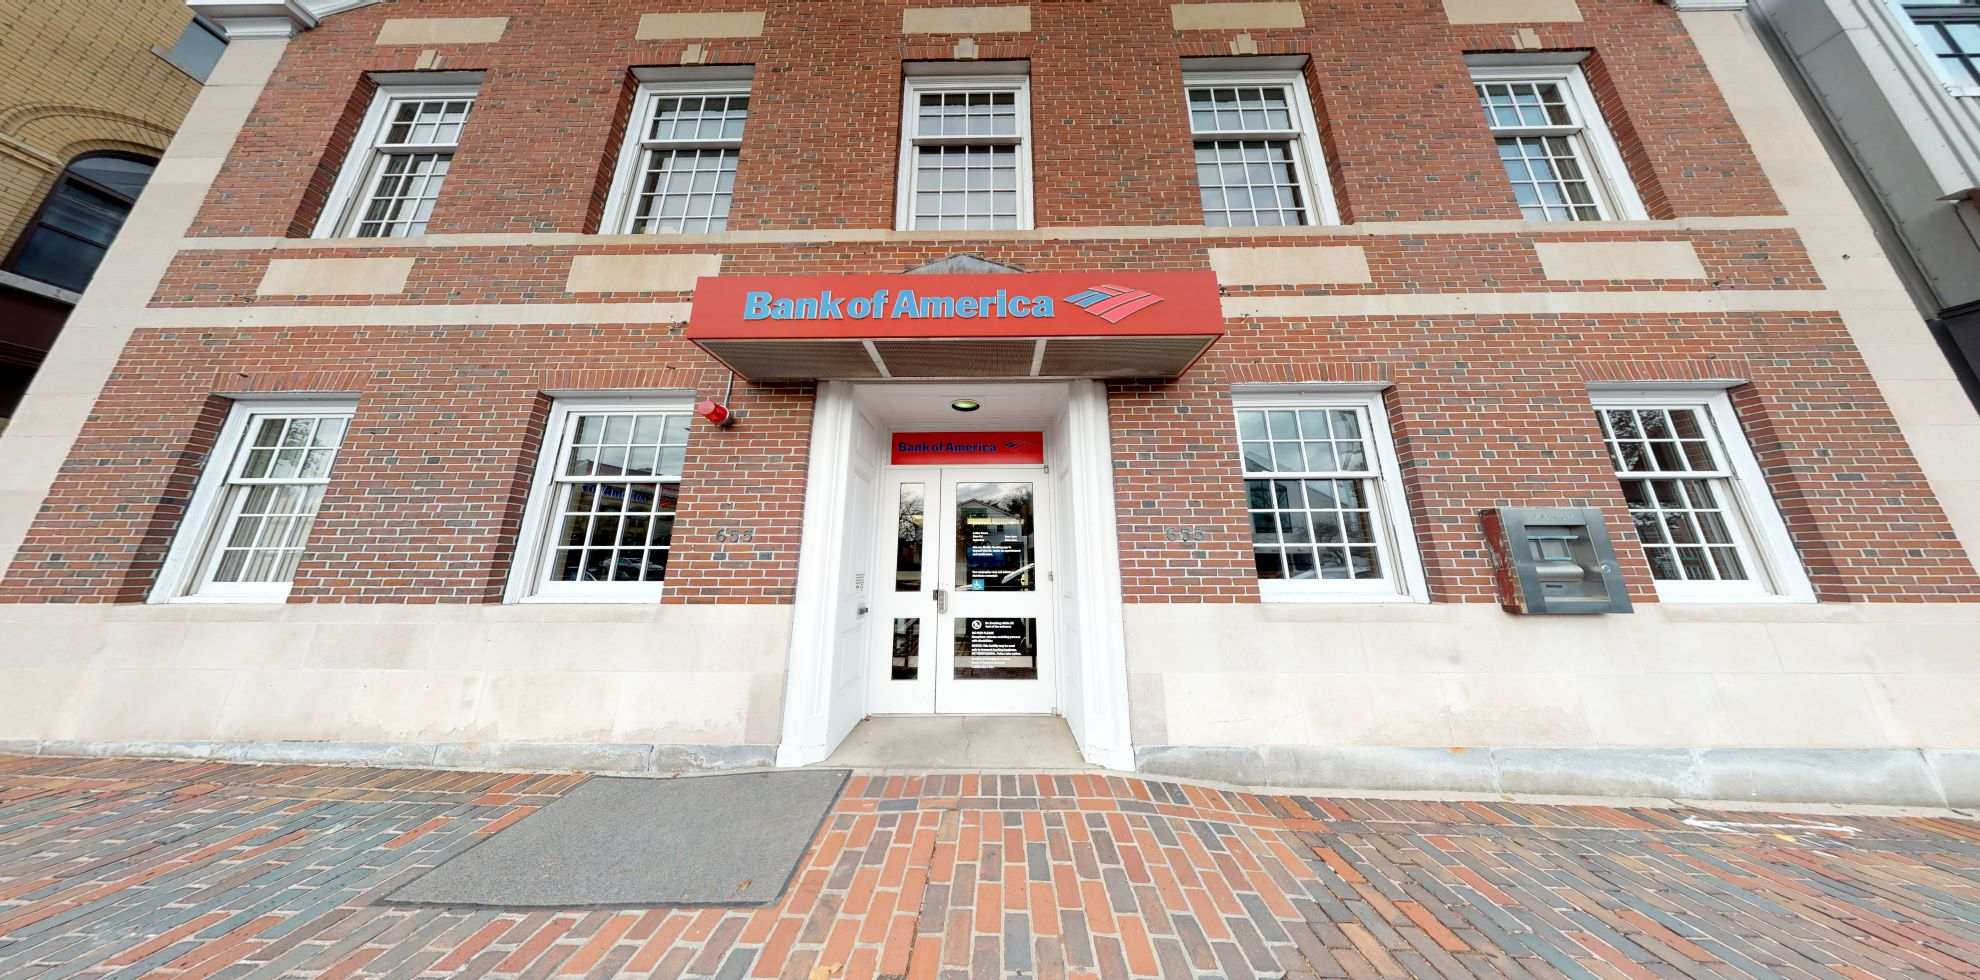 Bank of America financial center with walk-up ATM | 655 Massachusetts Ave, Arlington, MA 02476